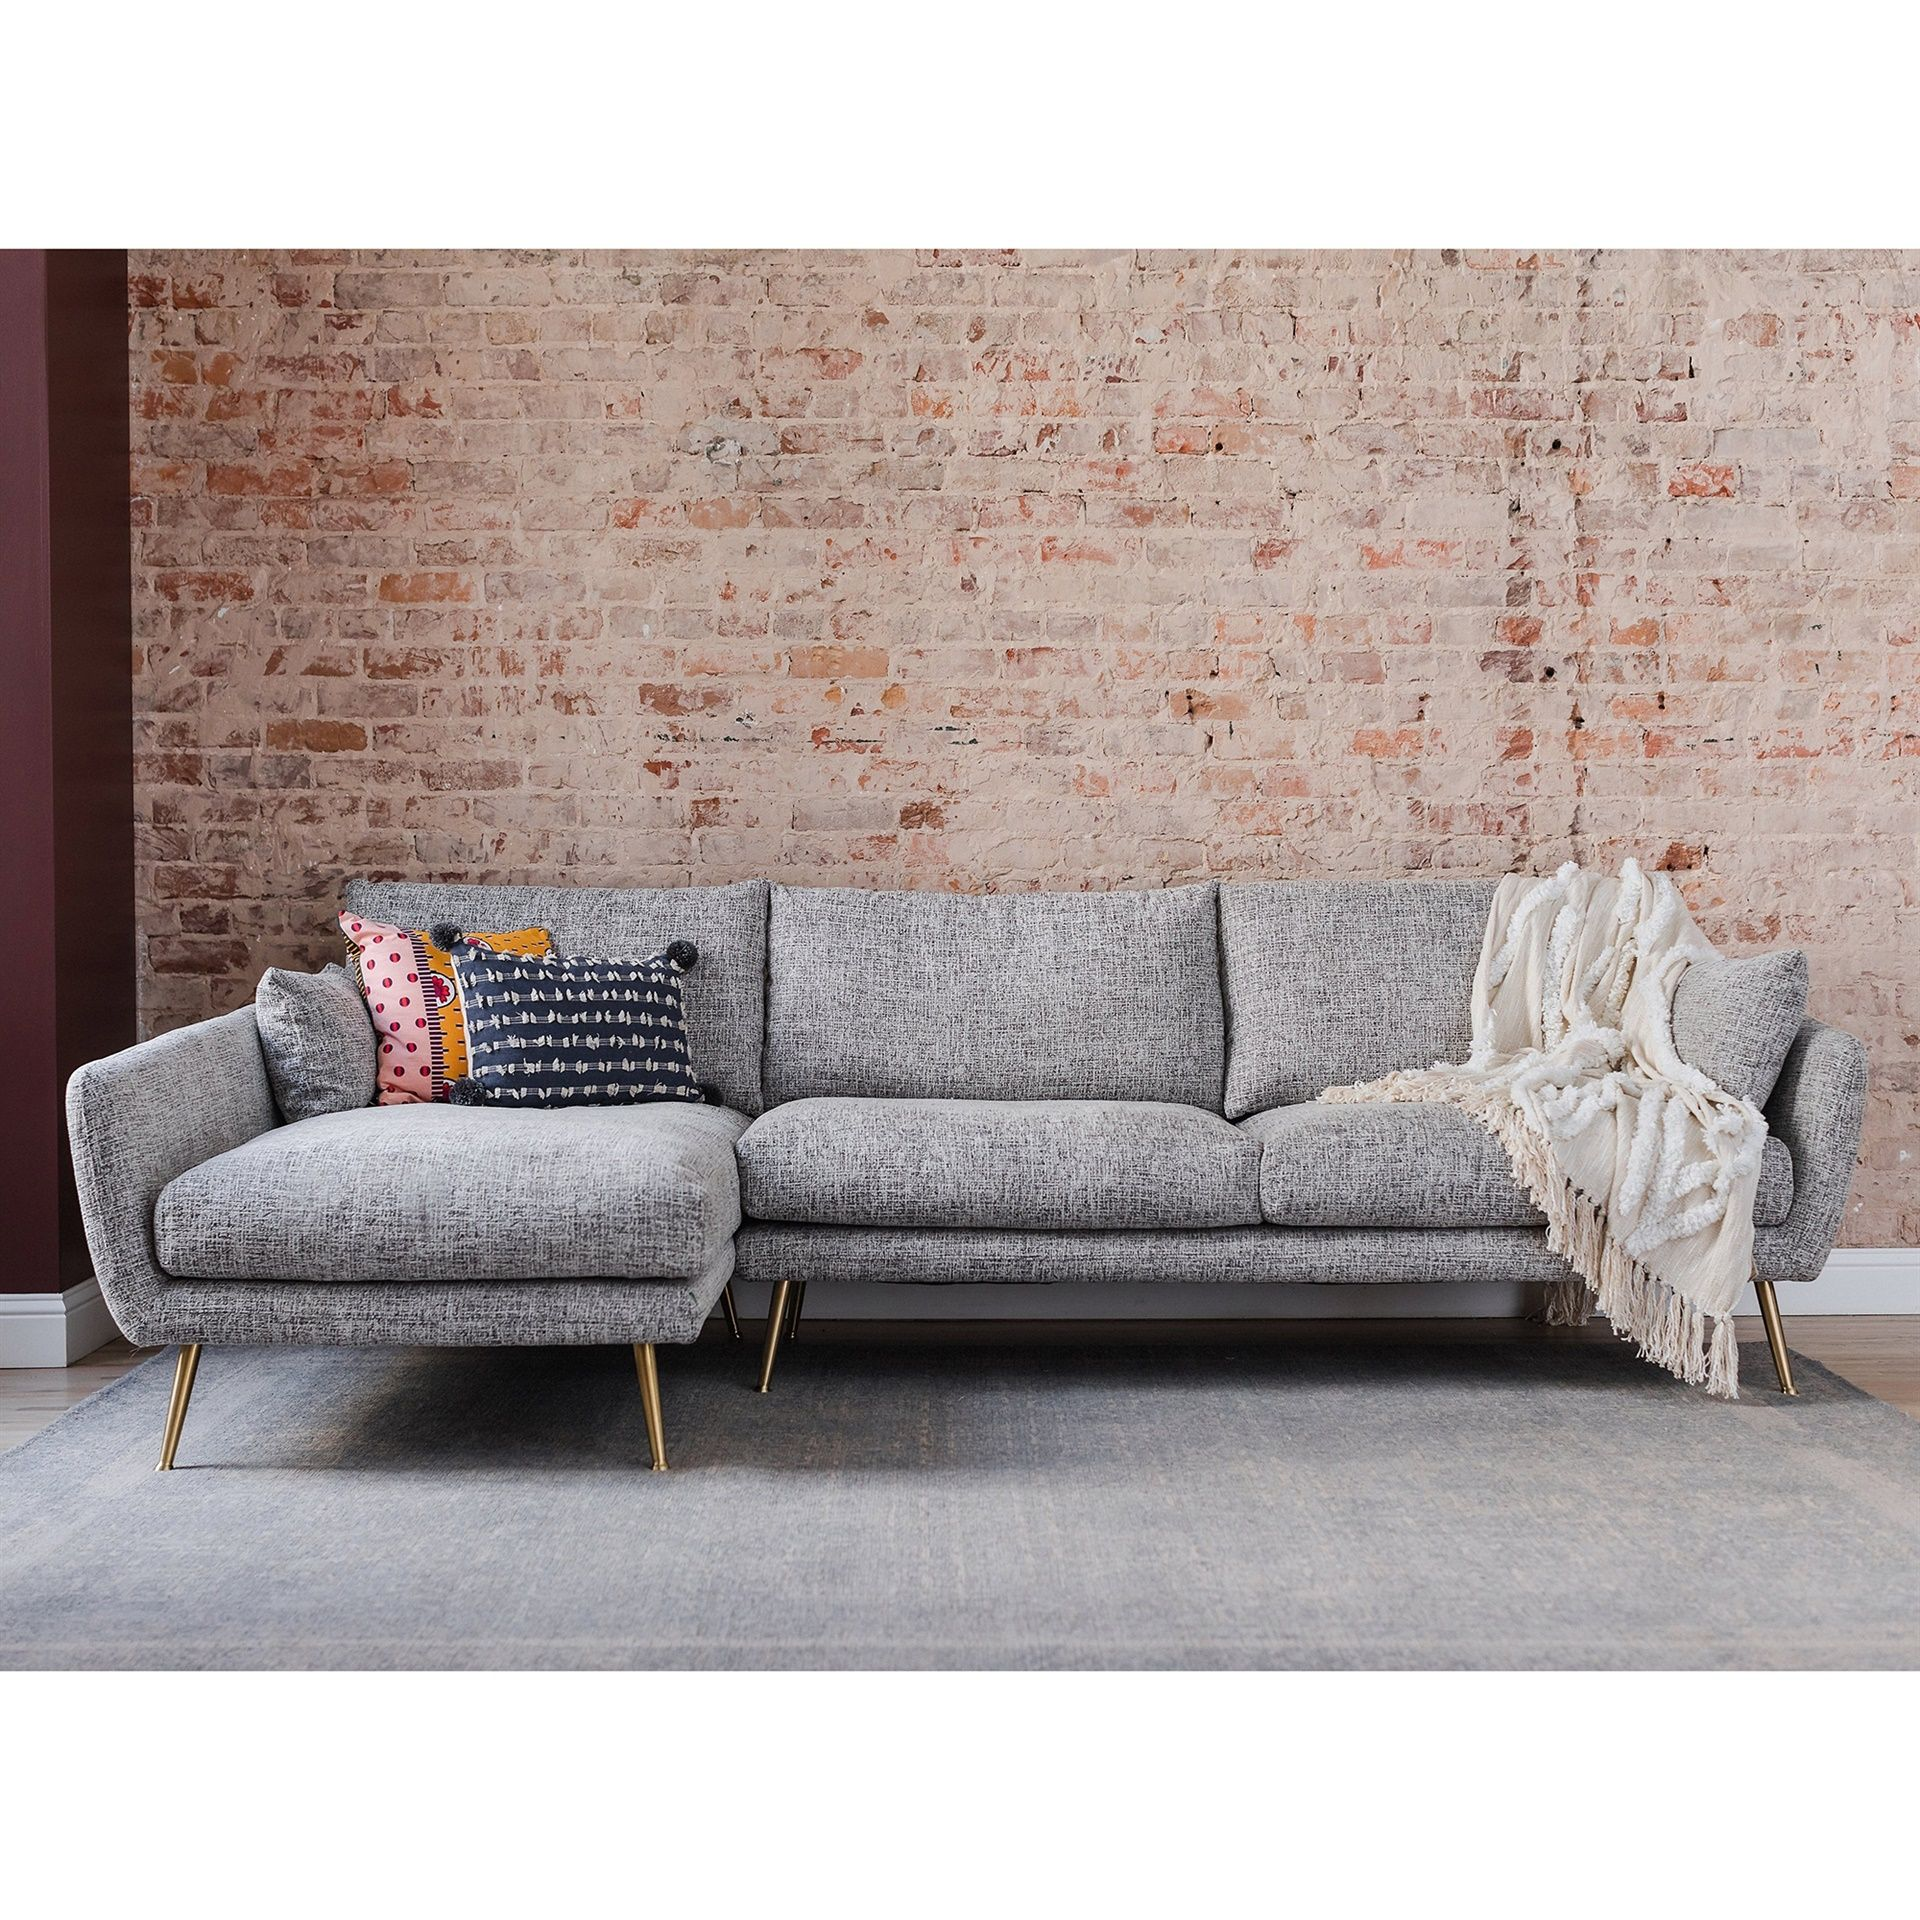 Harlow Sectional Sofa In 2021 Modern Sofa Sectional Mid Century Modern Sectional Sofa Sectional Sofa